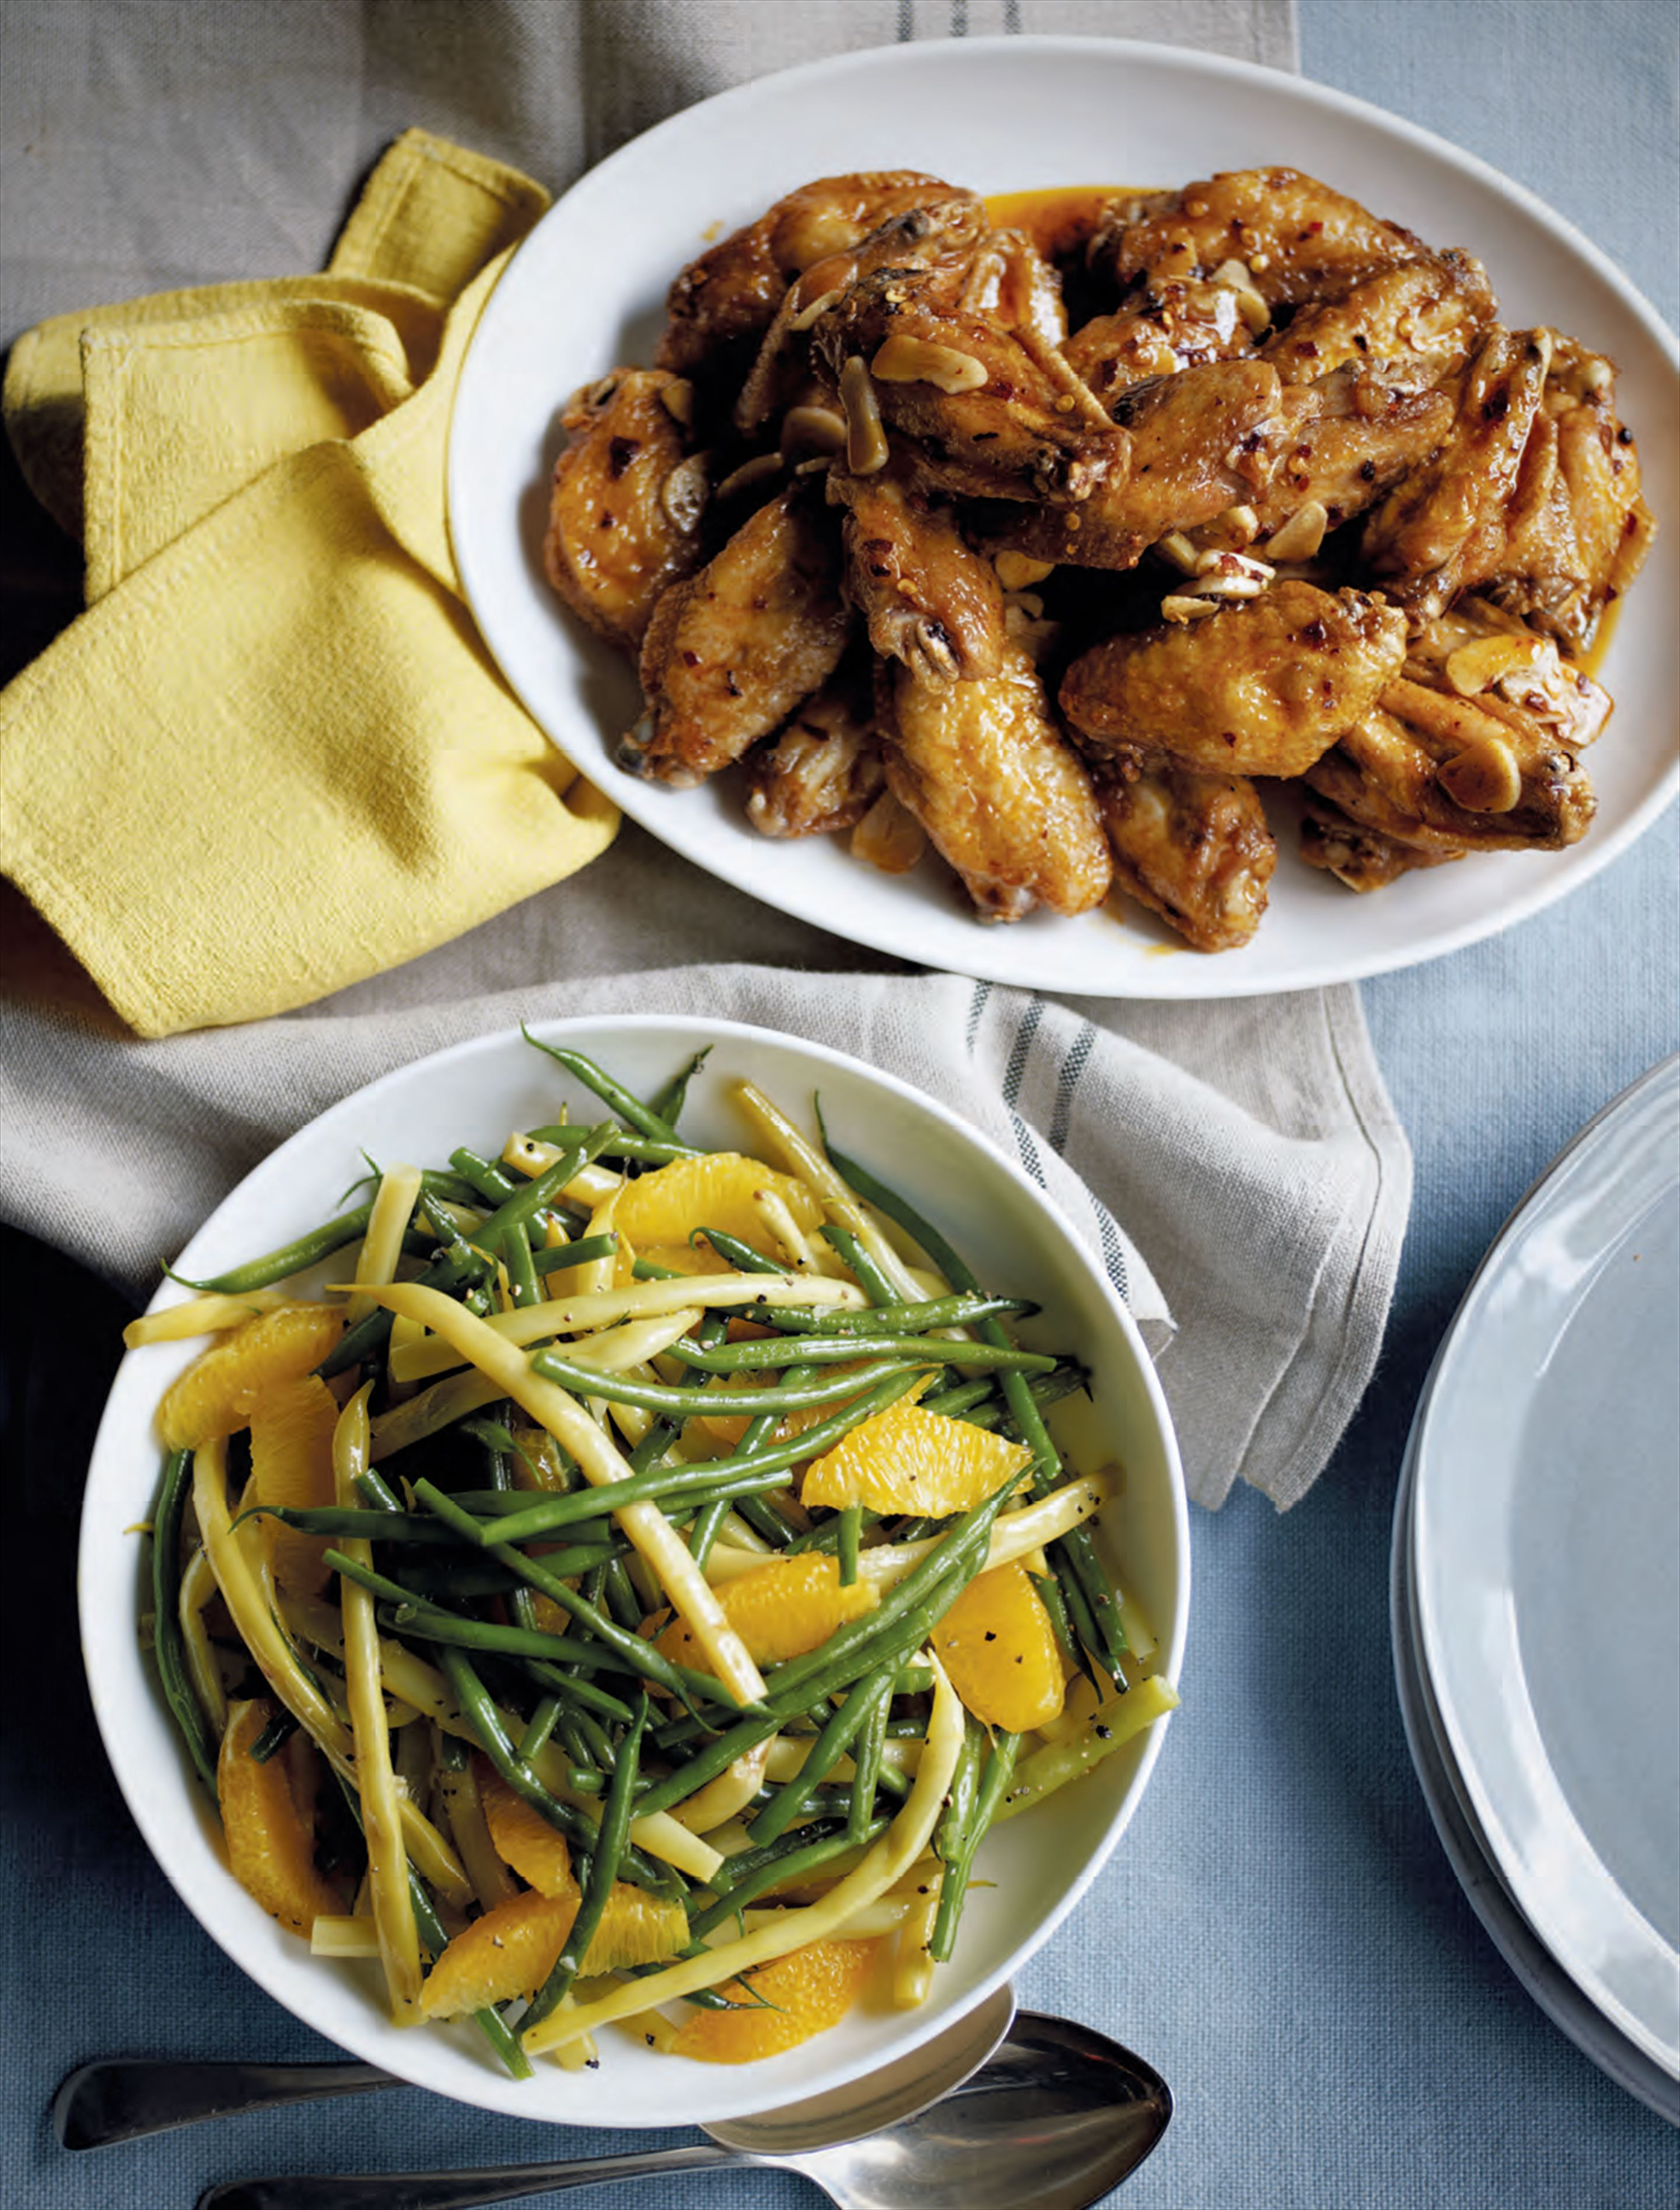 Spicy chicken with orange & green bean salad